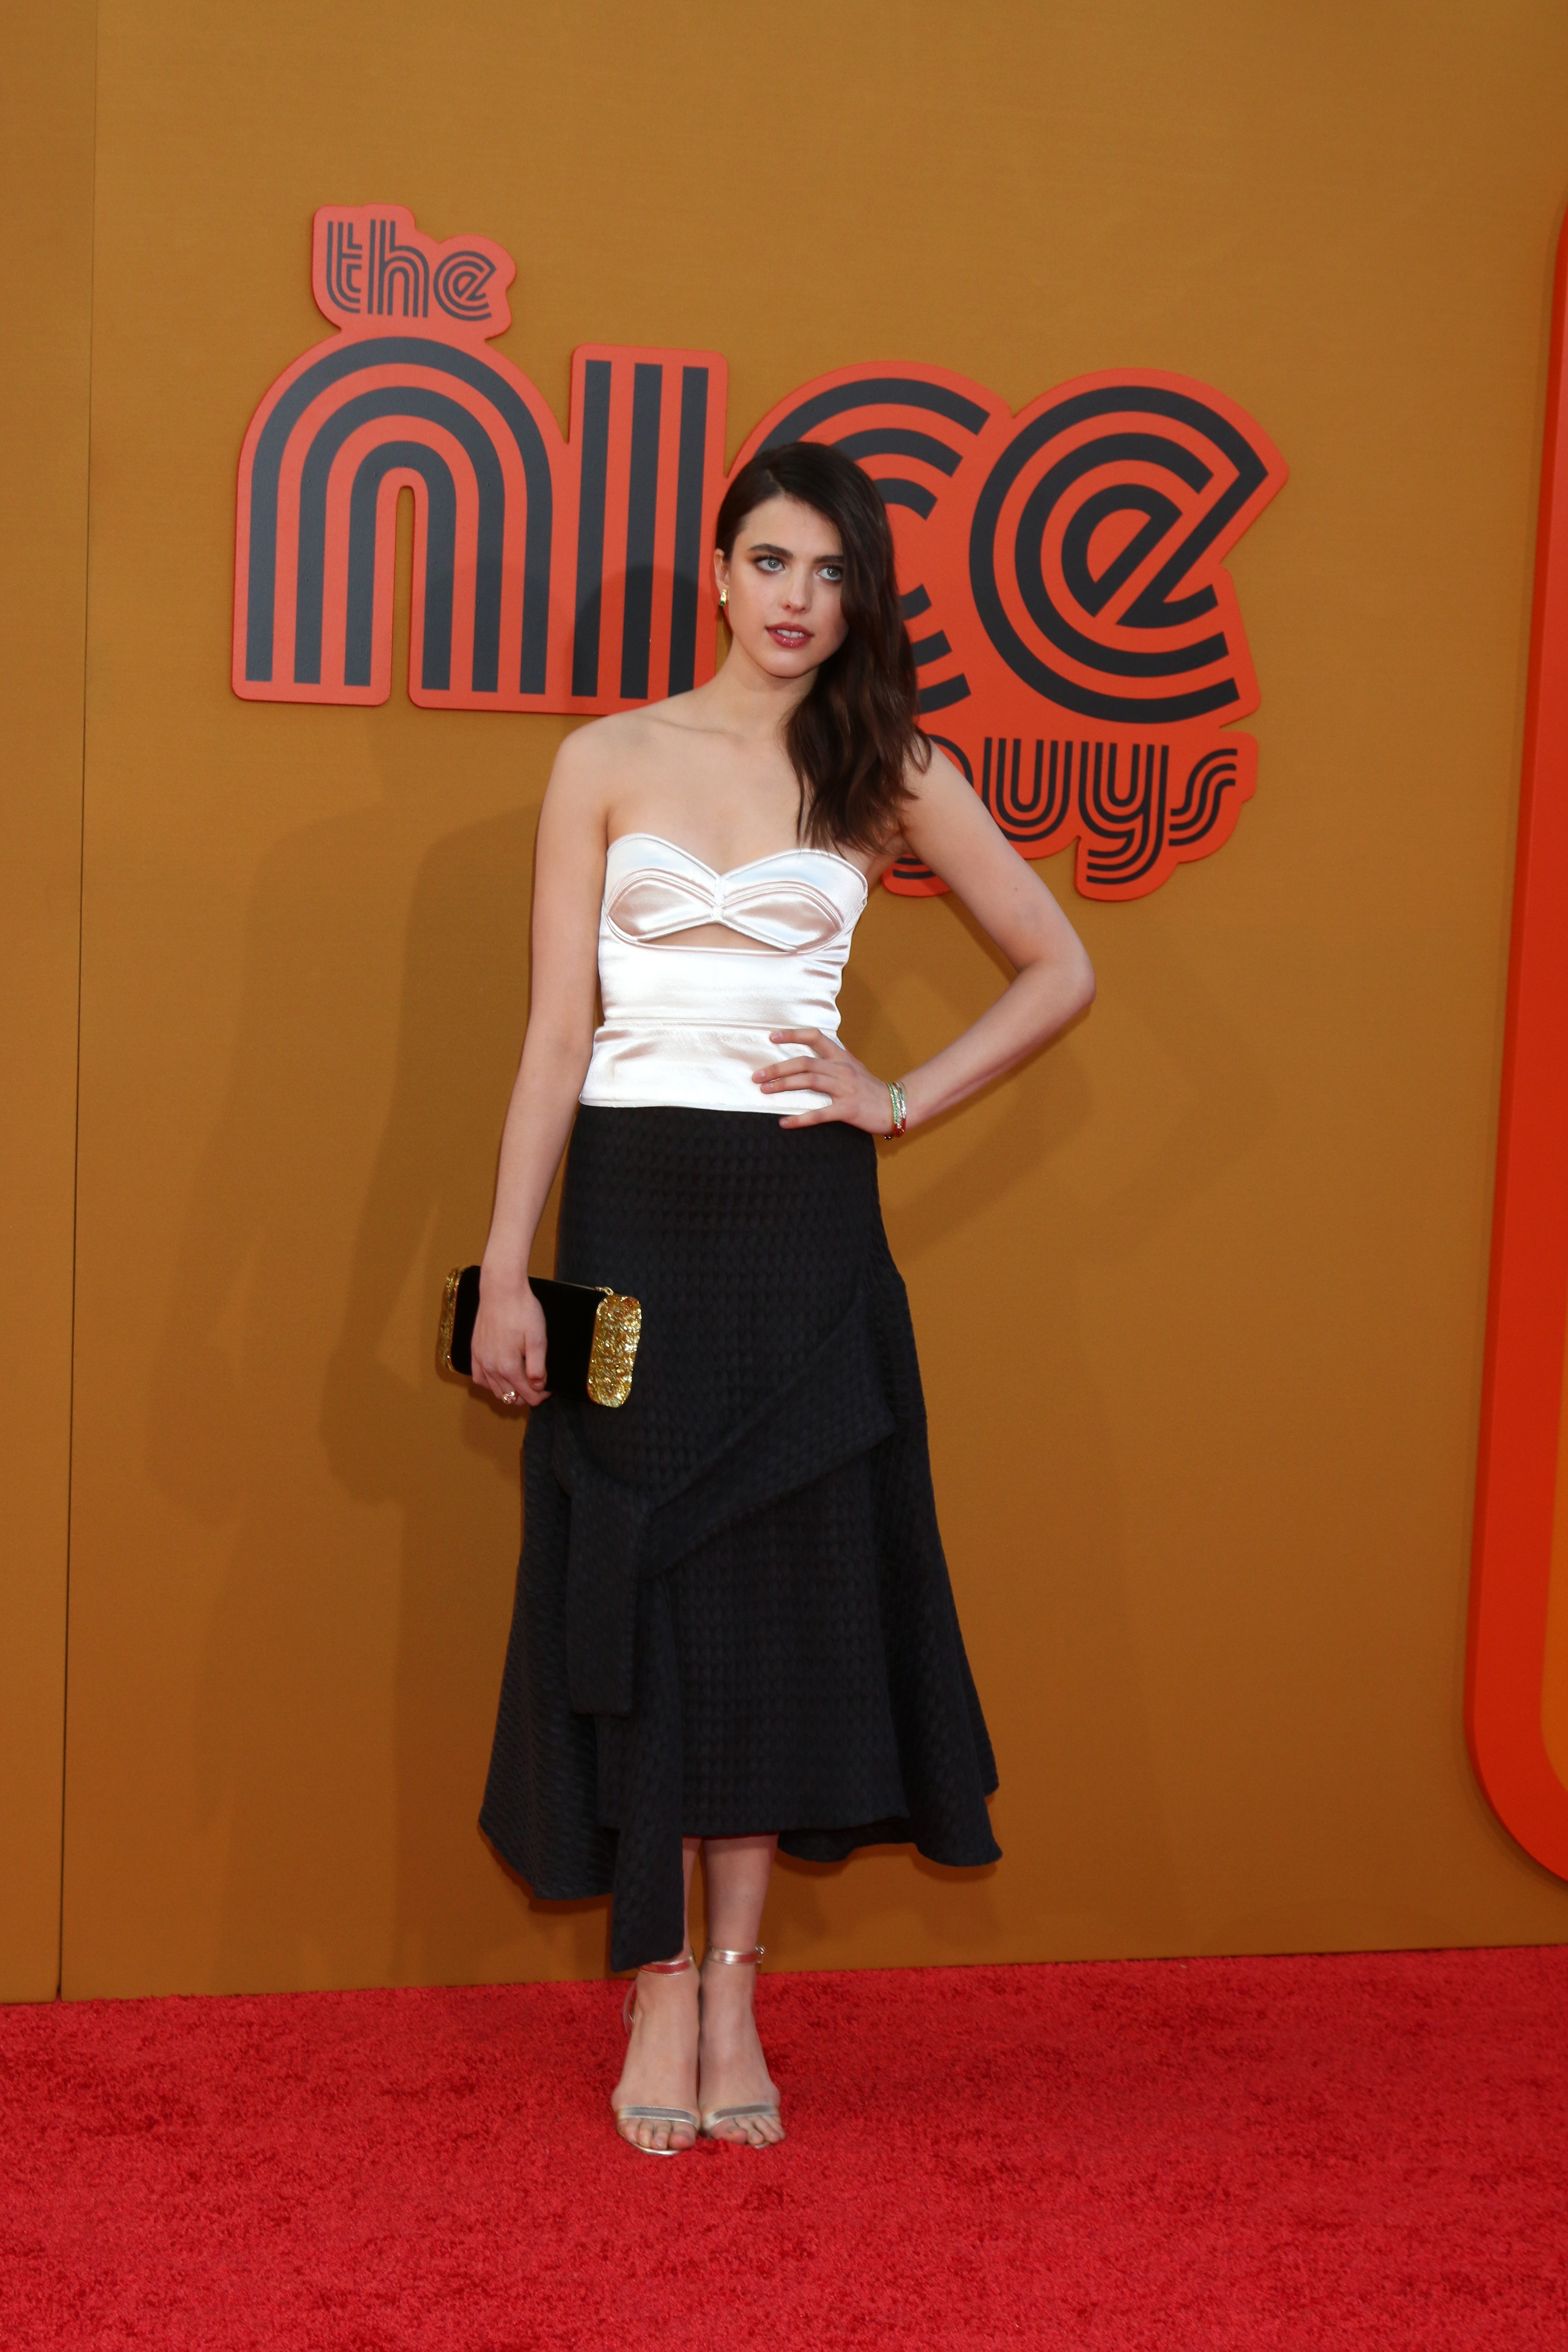 Margaret Qualley The Nice Guys wallpapers (34 Wallpapers ...